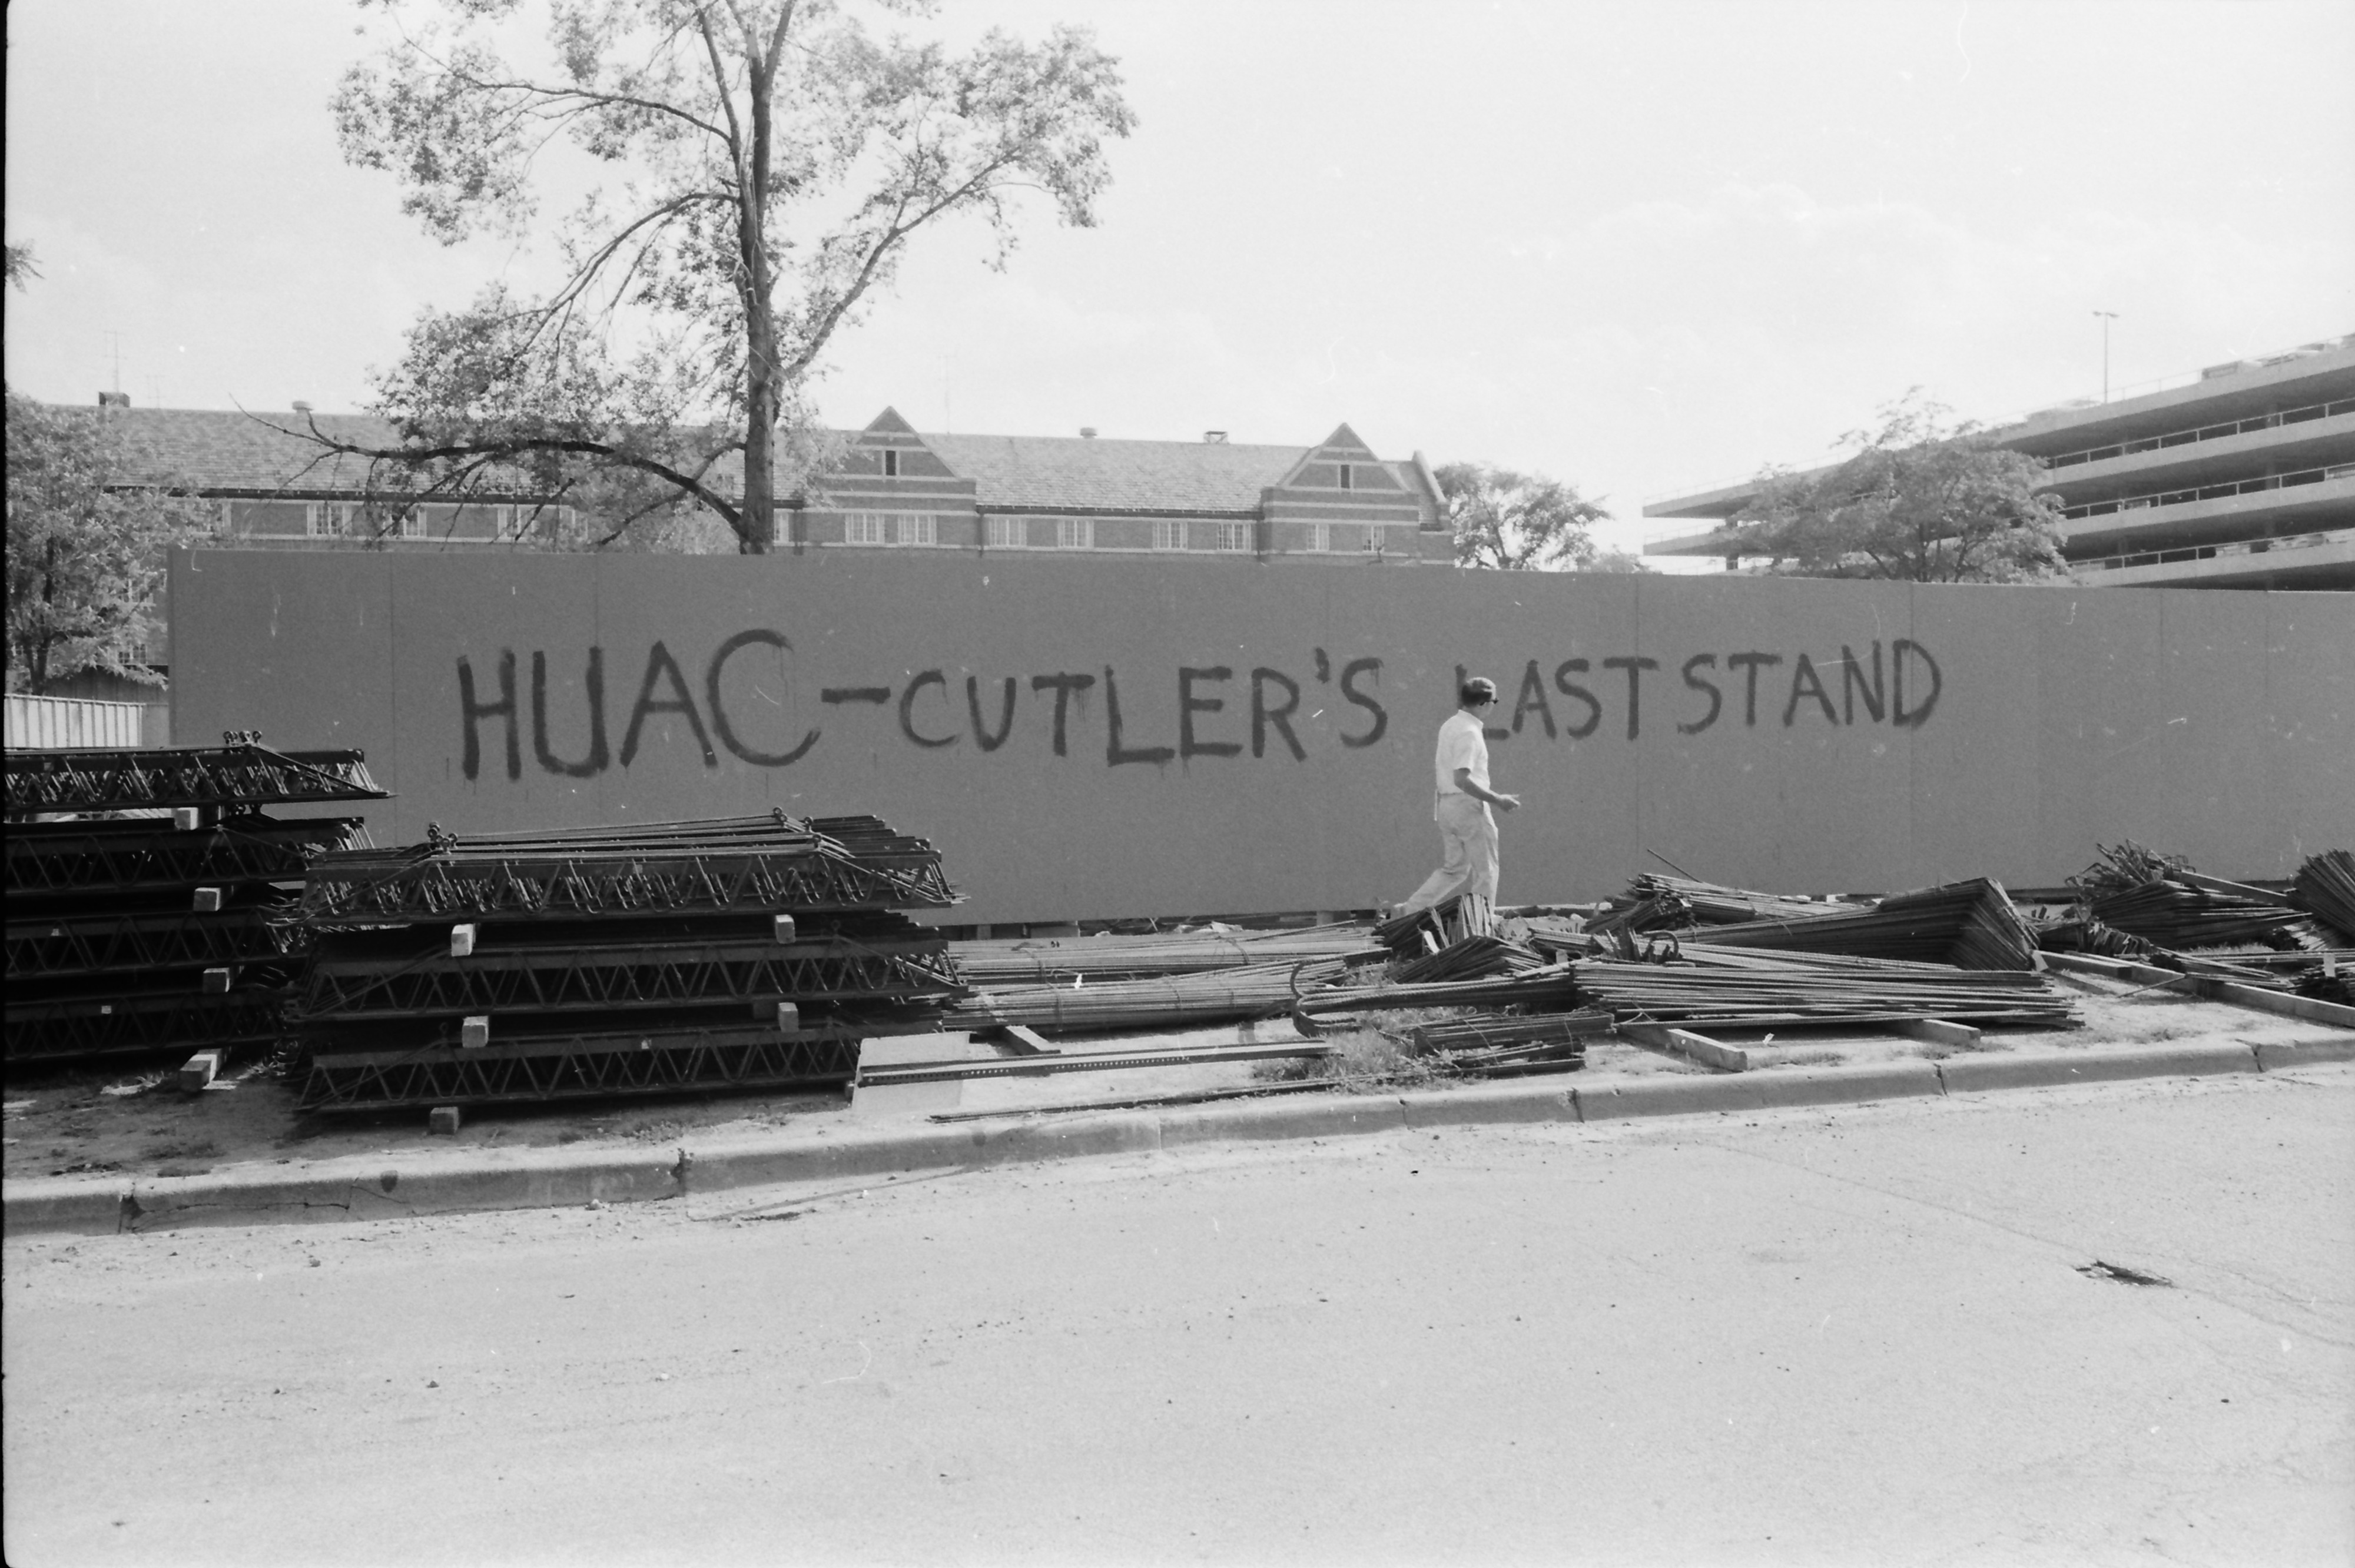 Graffiti, HUAC Sit-in Demonstration, August 1966 image